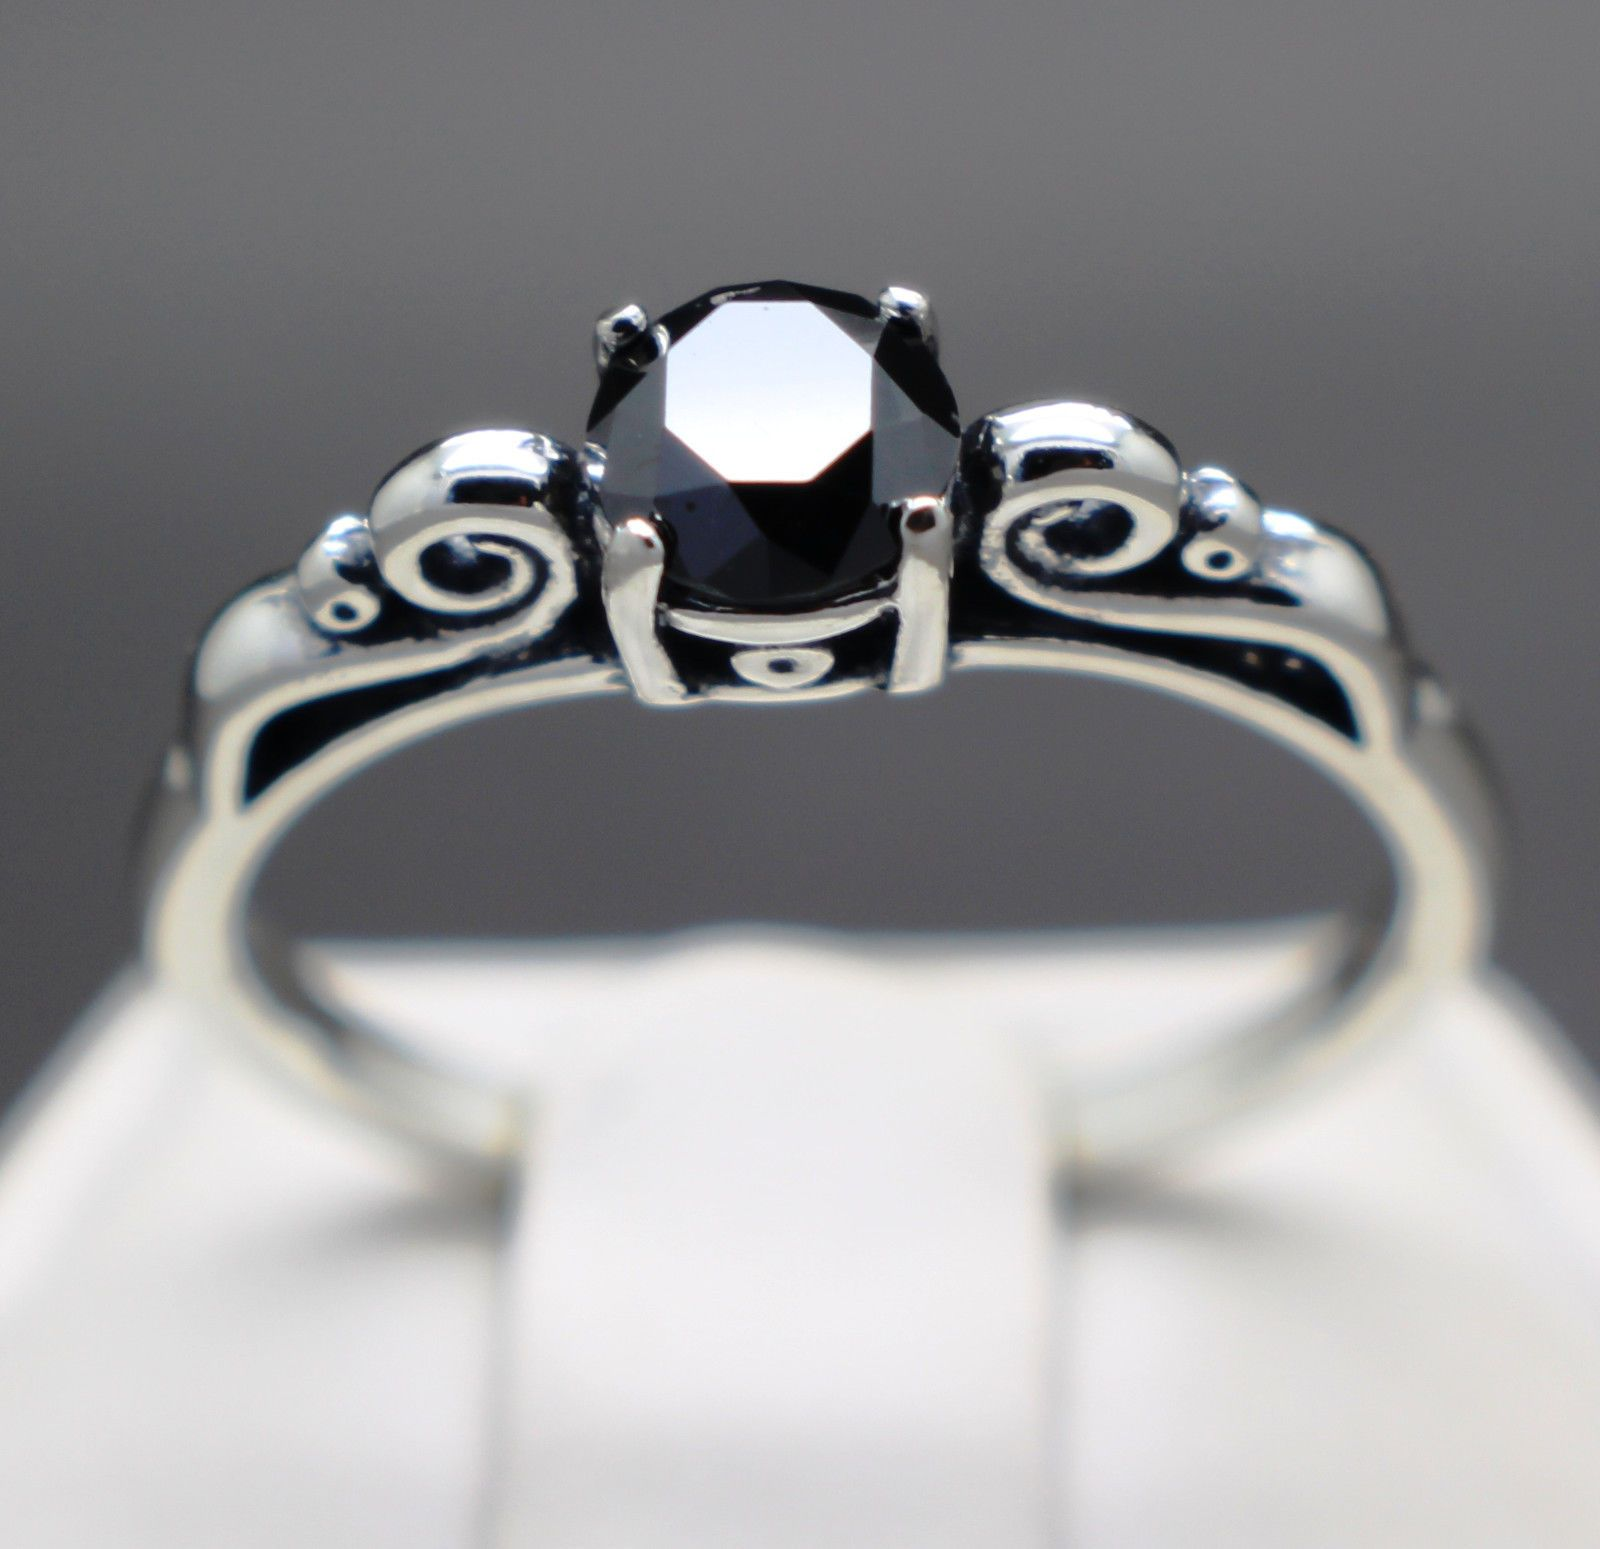 jewelry 67cts 5 70mm Natural Black Diamond Ring Certified AAA